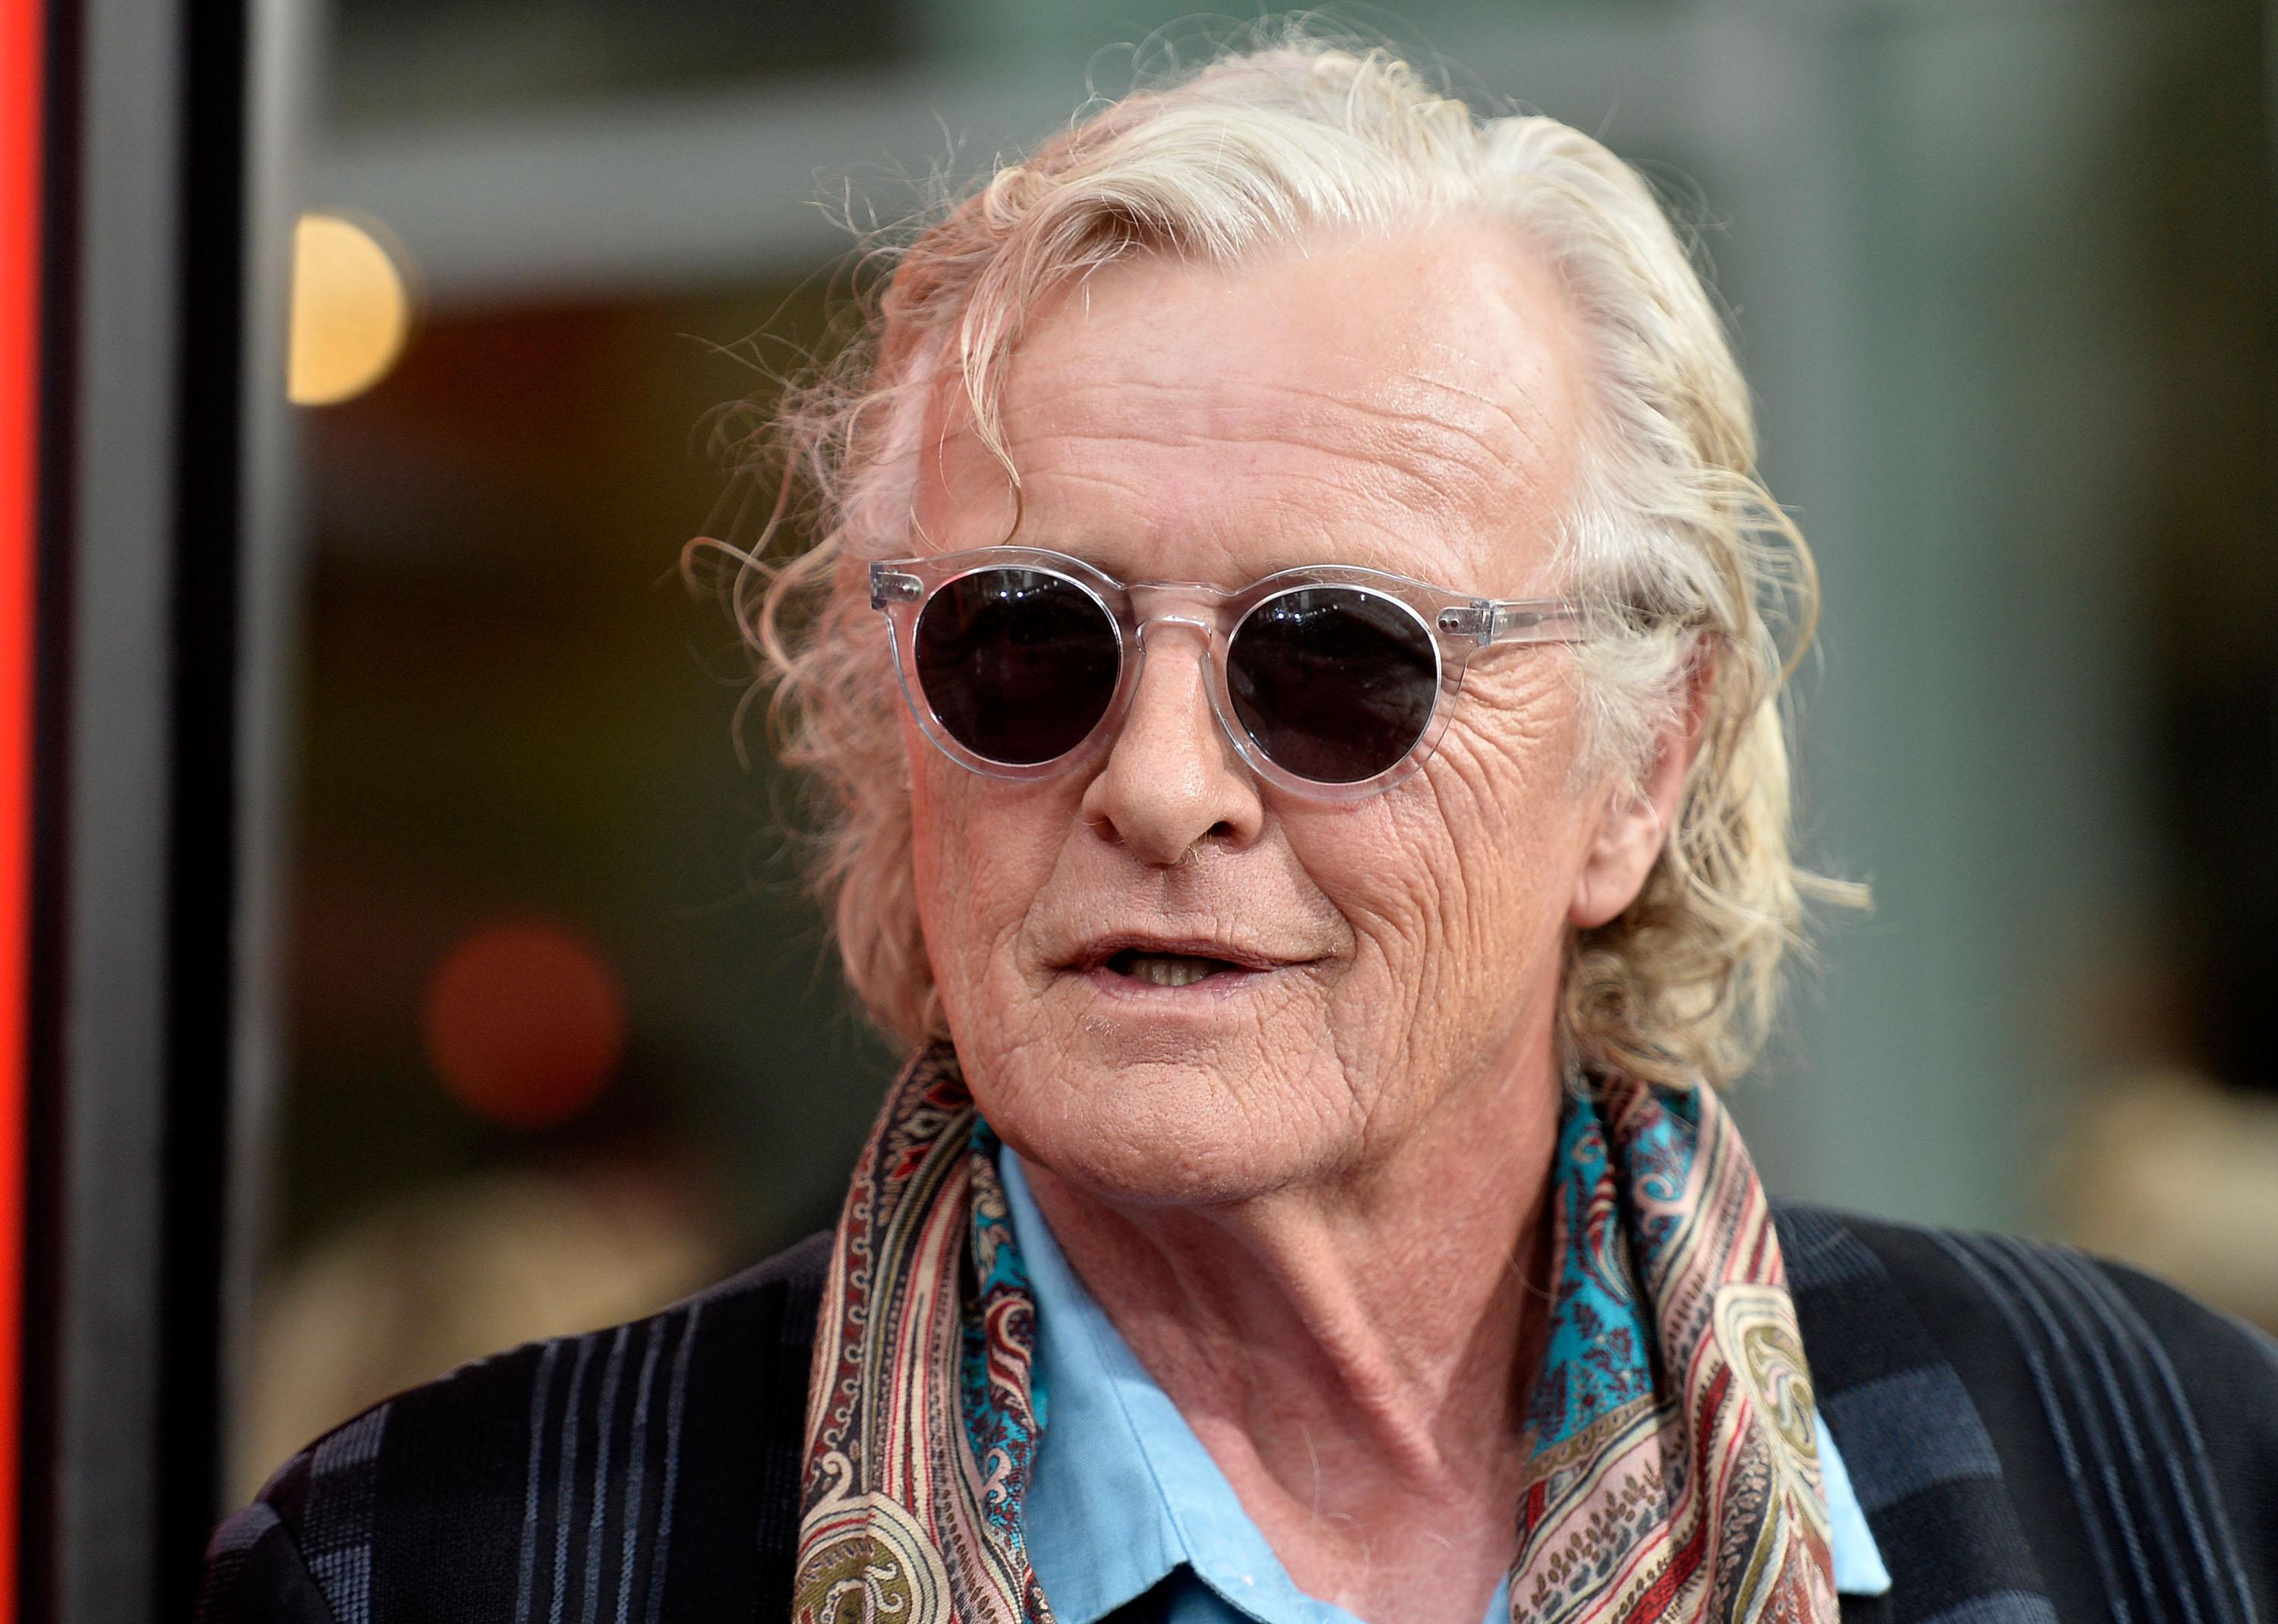 Rutger Hauer attends the premiere of HBO's 'True Blood' Season 6 in 2013.